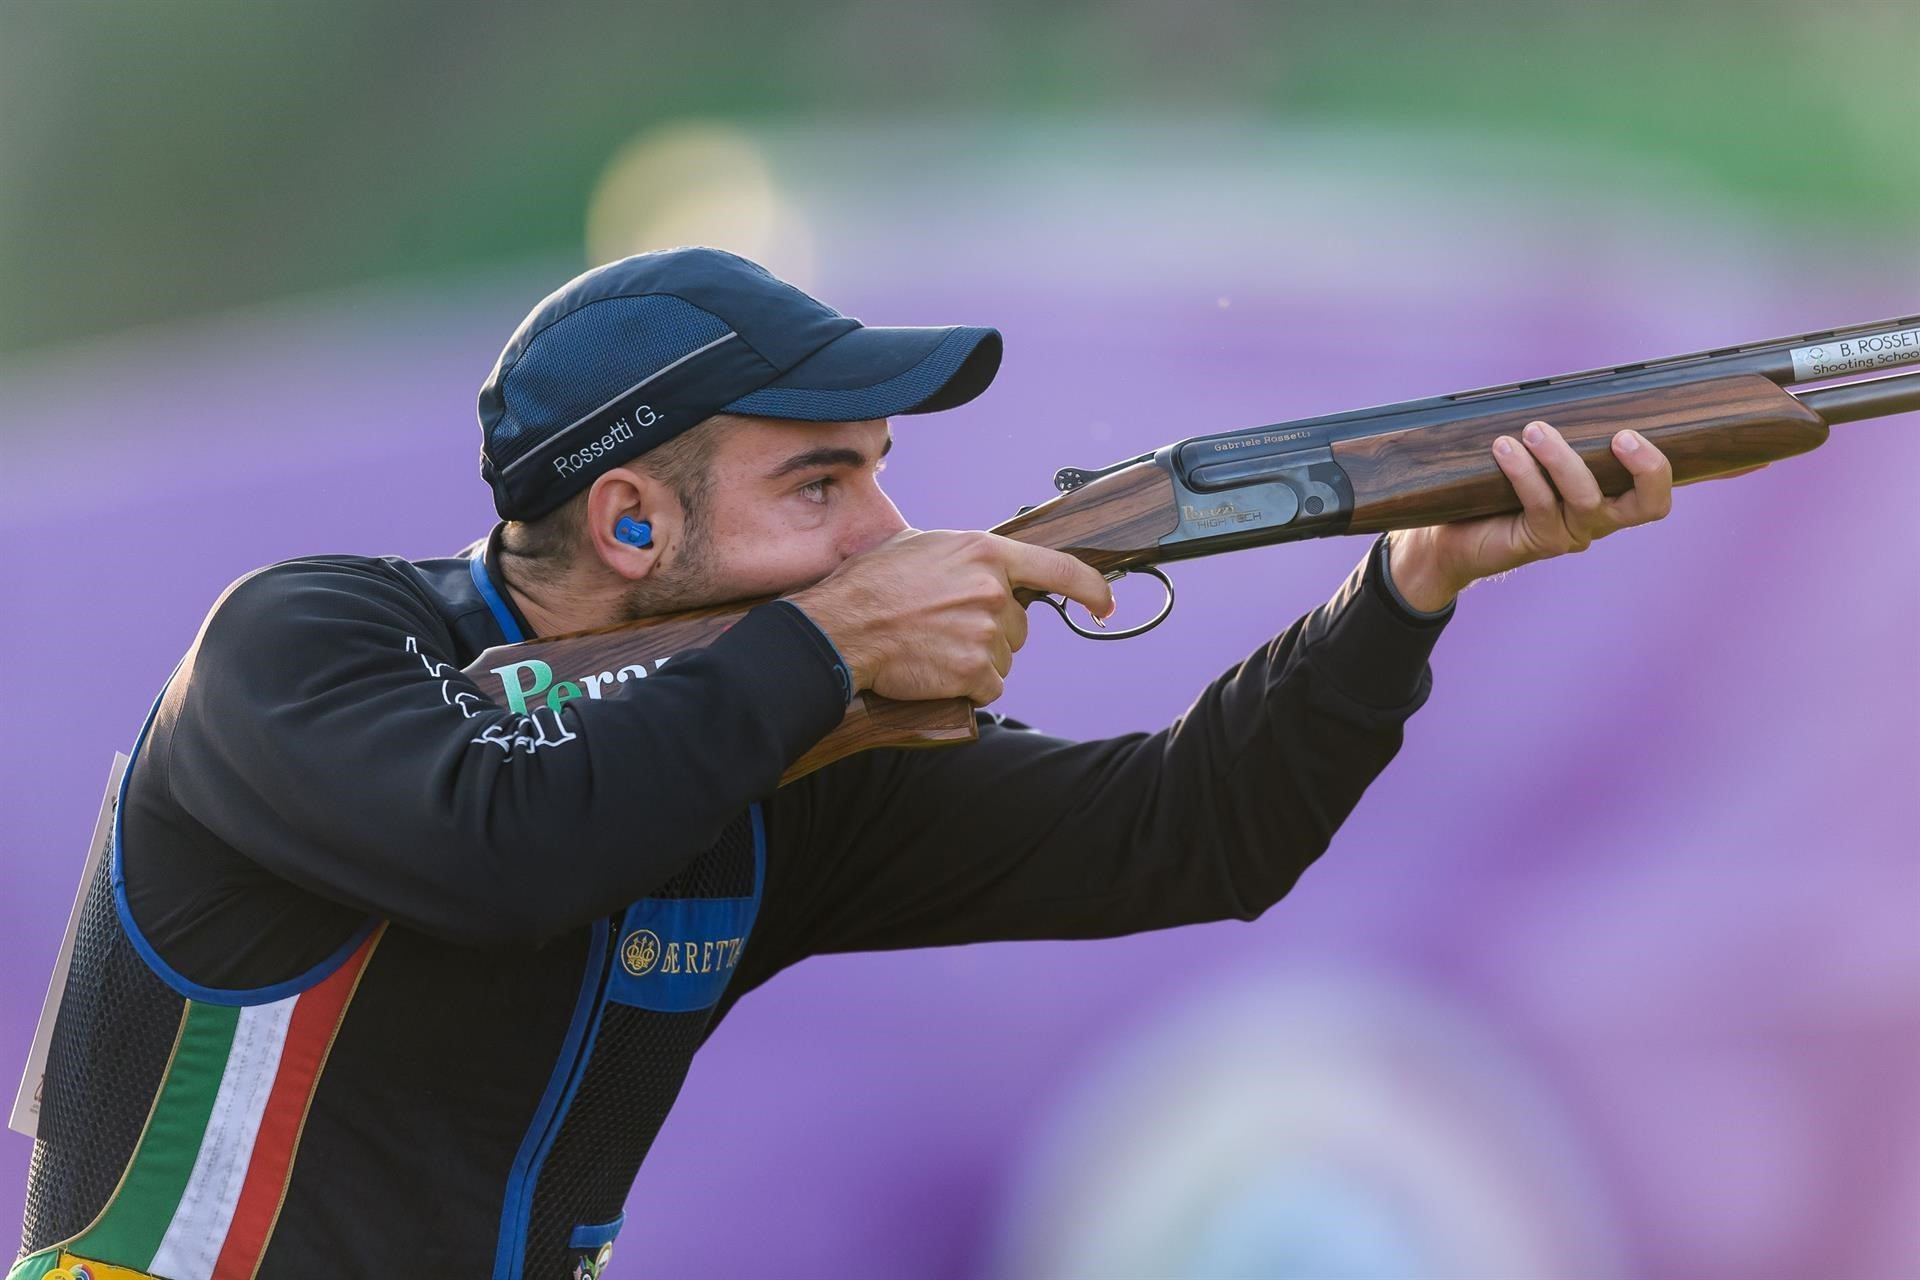 Olympic gold medallist Rossetti wins men's skeet title at ISSF World Championships